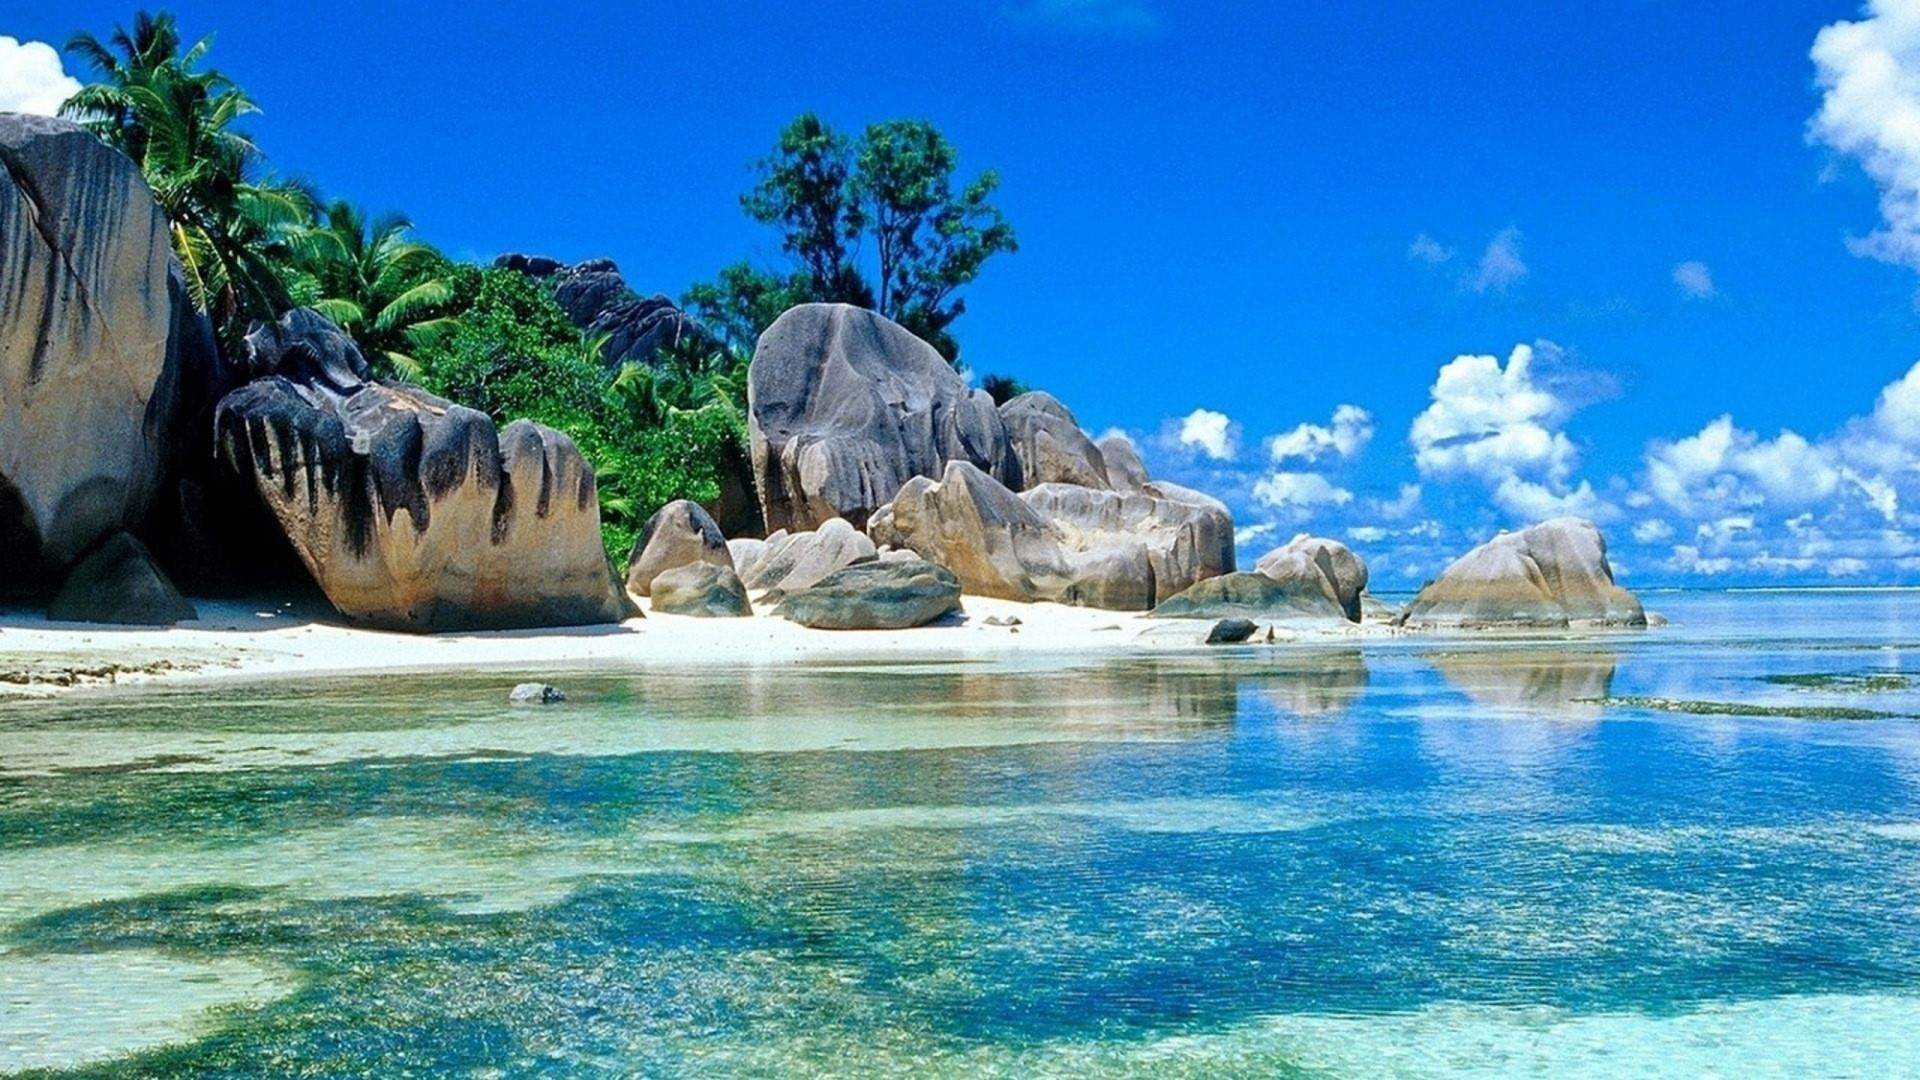 Res: 1920x1080, Seychelles Islands ☀ Wallpaper | Wallpaper Studio 10 | Tens of thousands HD  and UltraHD wallpapers for Android, Windows and Xbox